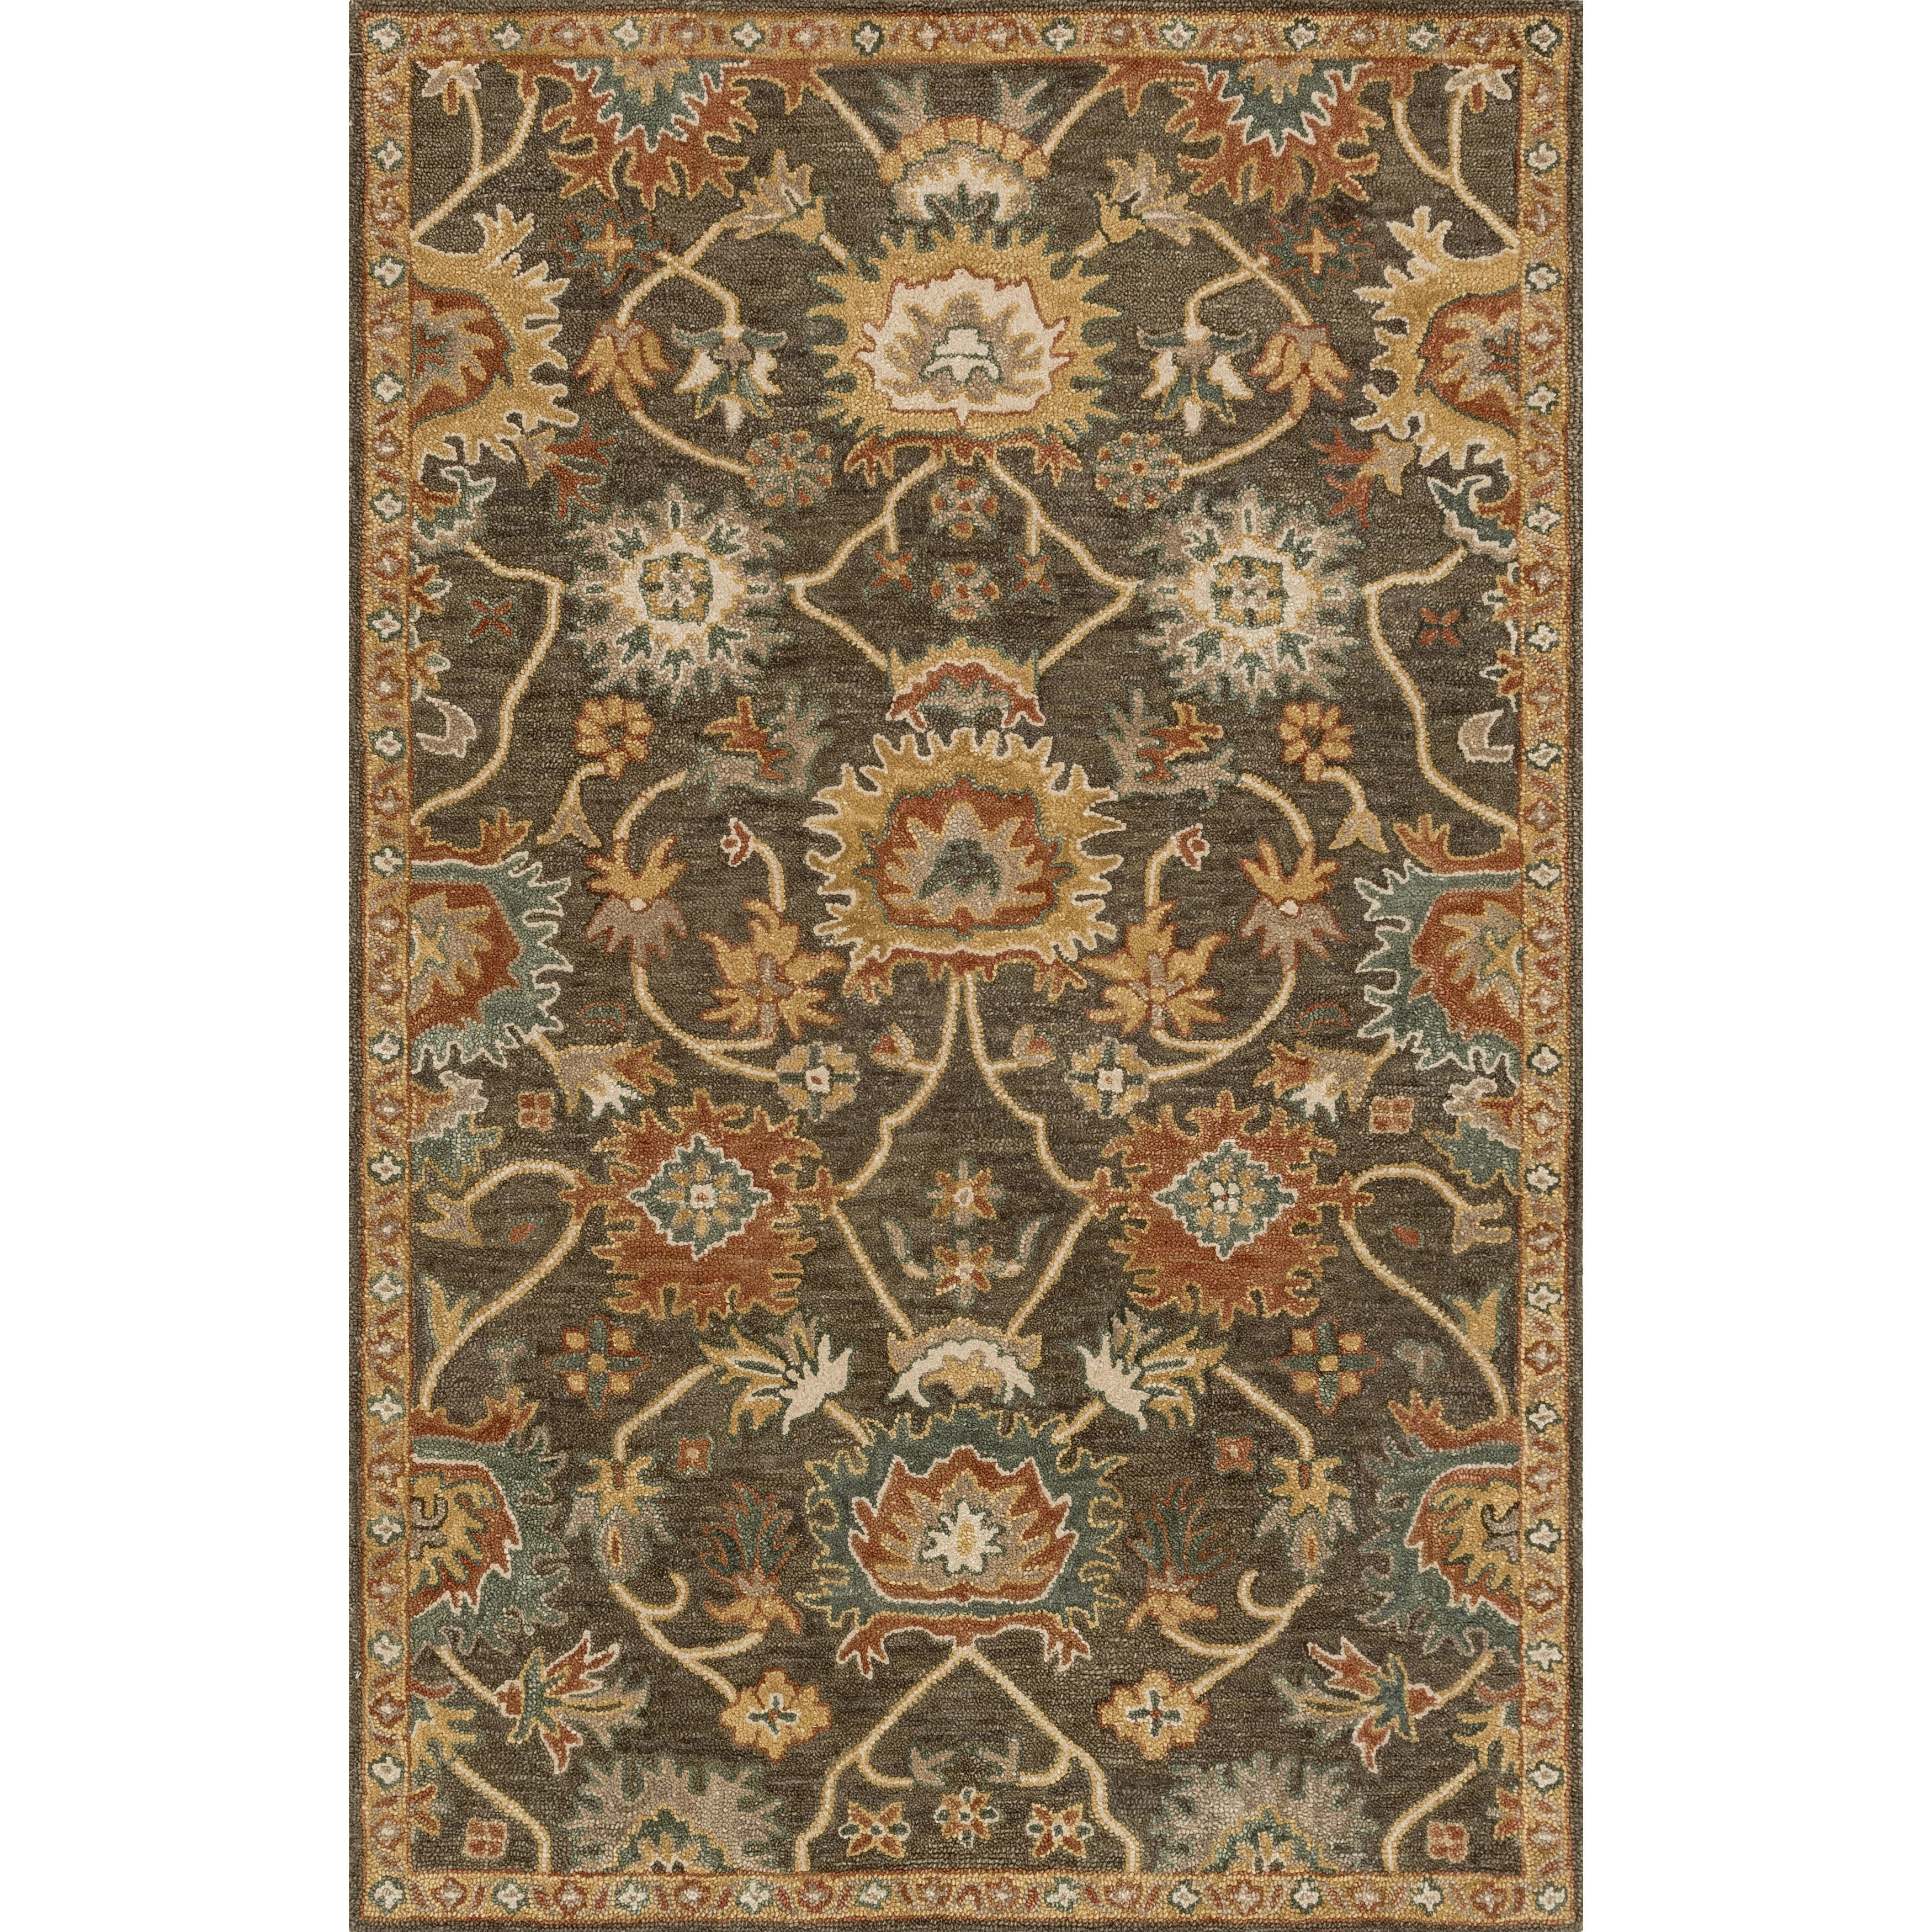 Online Shopping Bedding Furniture Electronics Jewelry Clothing More Rugs Area Rugs Gold Rug